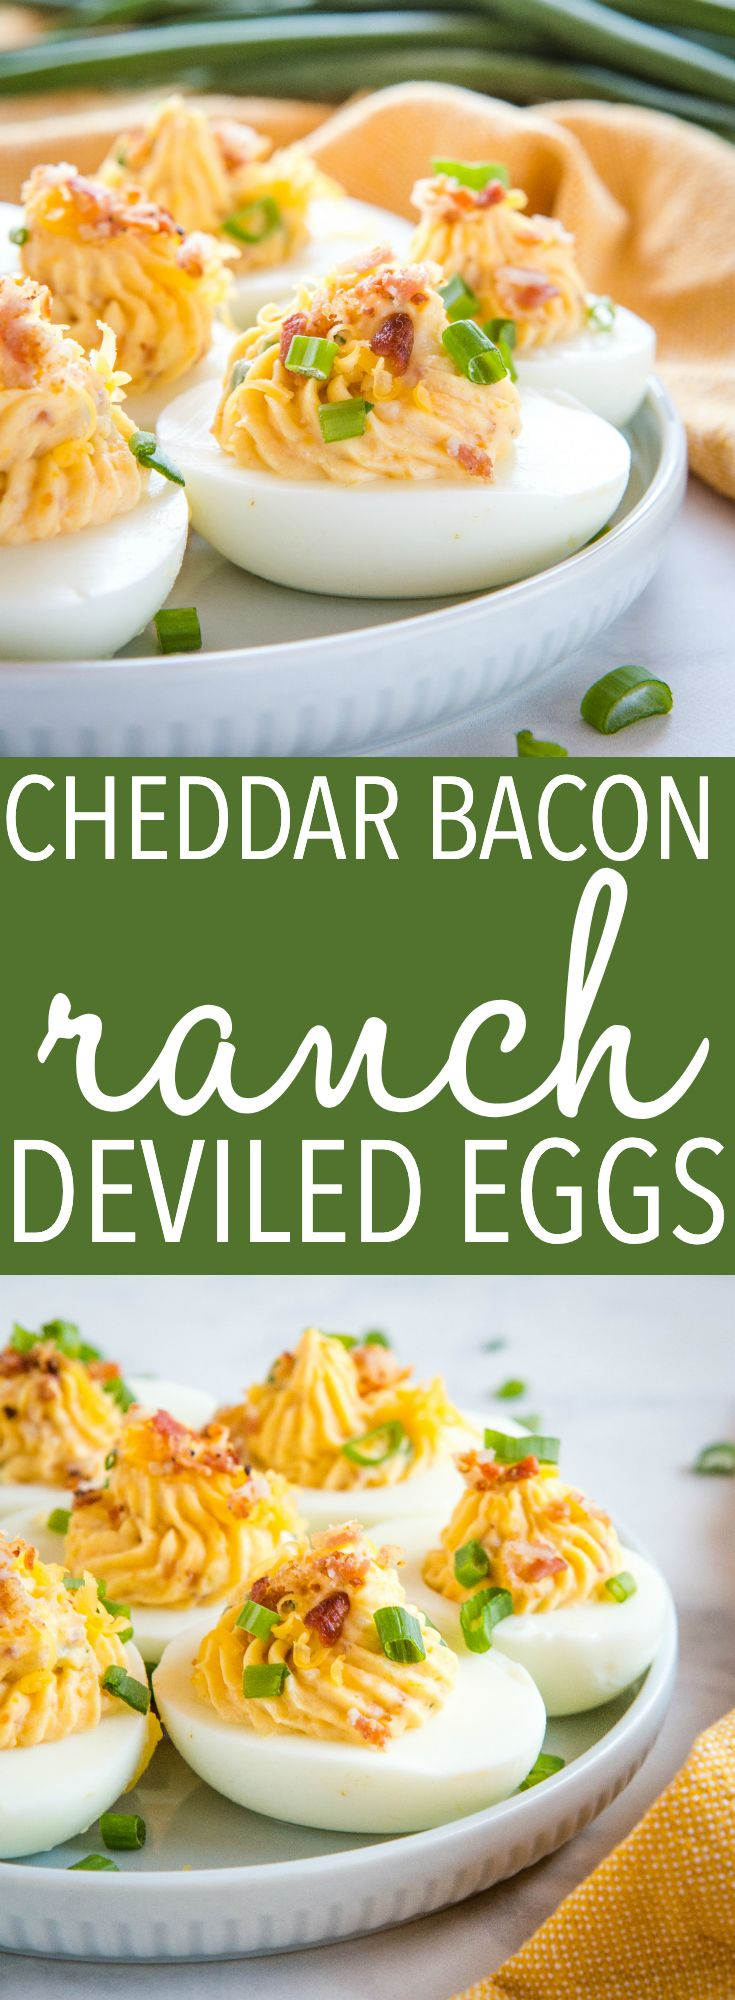 Best Ever Cheddar Bacon Ranch Deviled Eggs - The Busy Baker